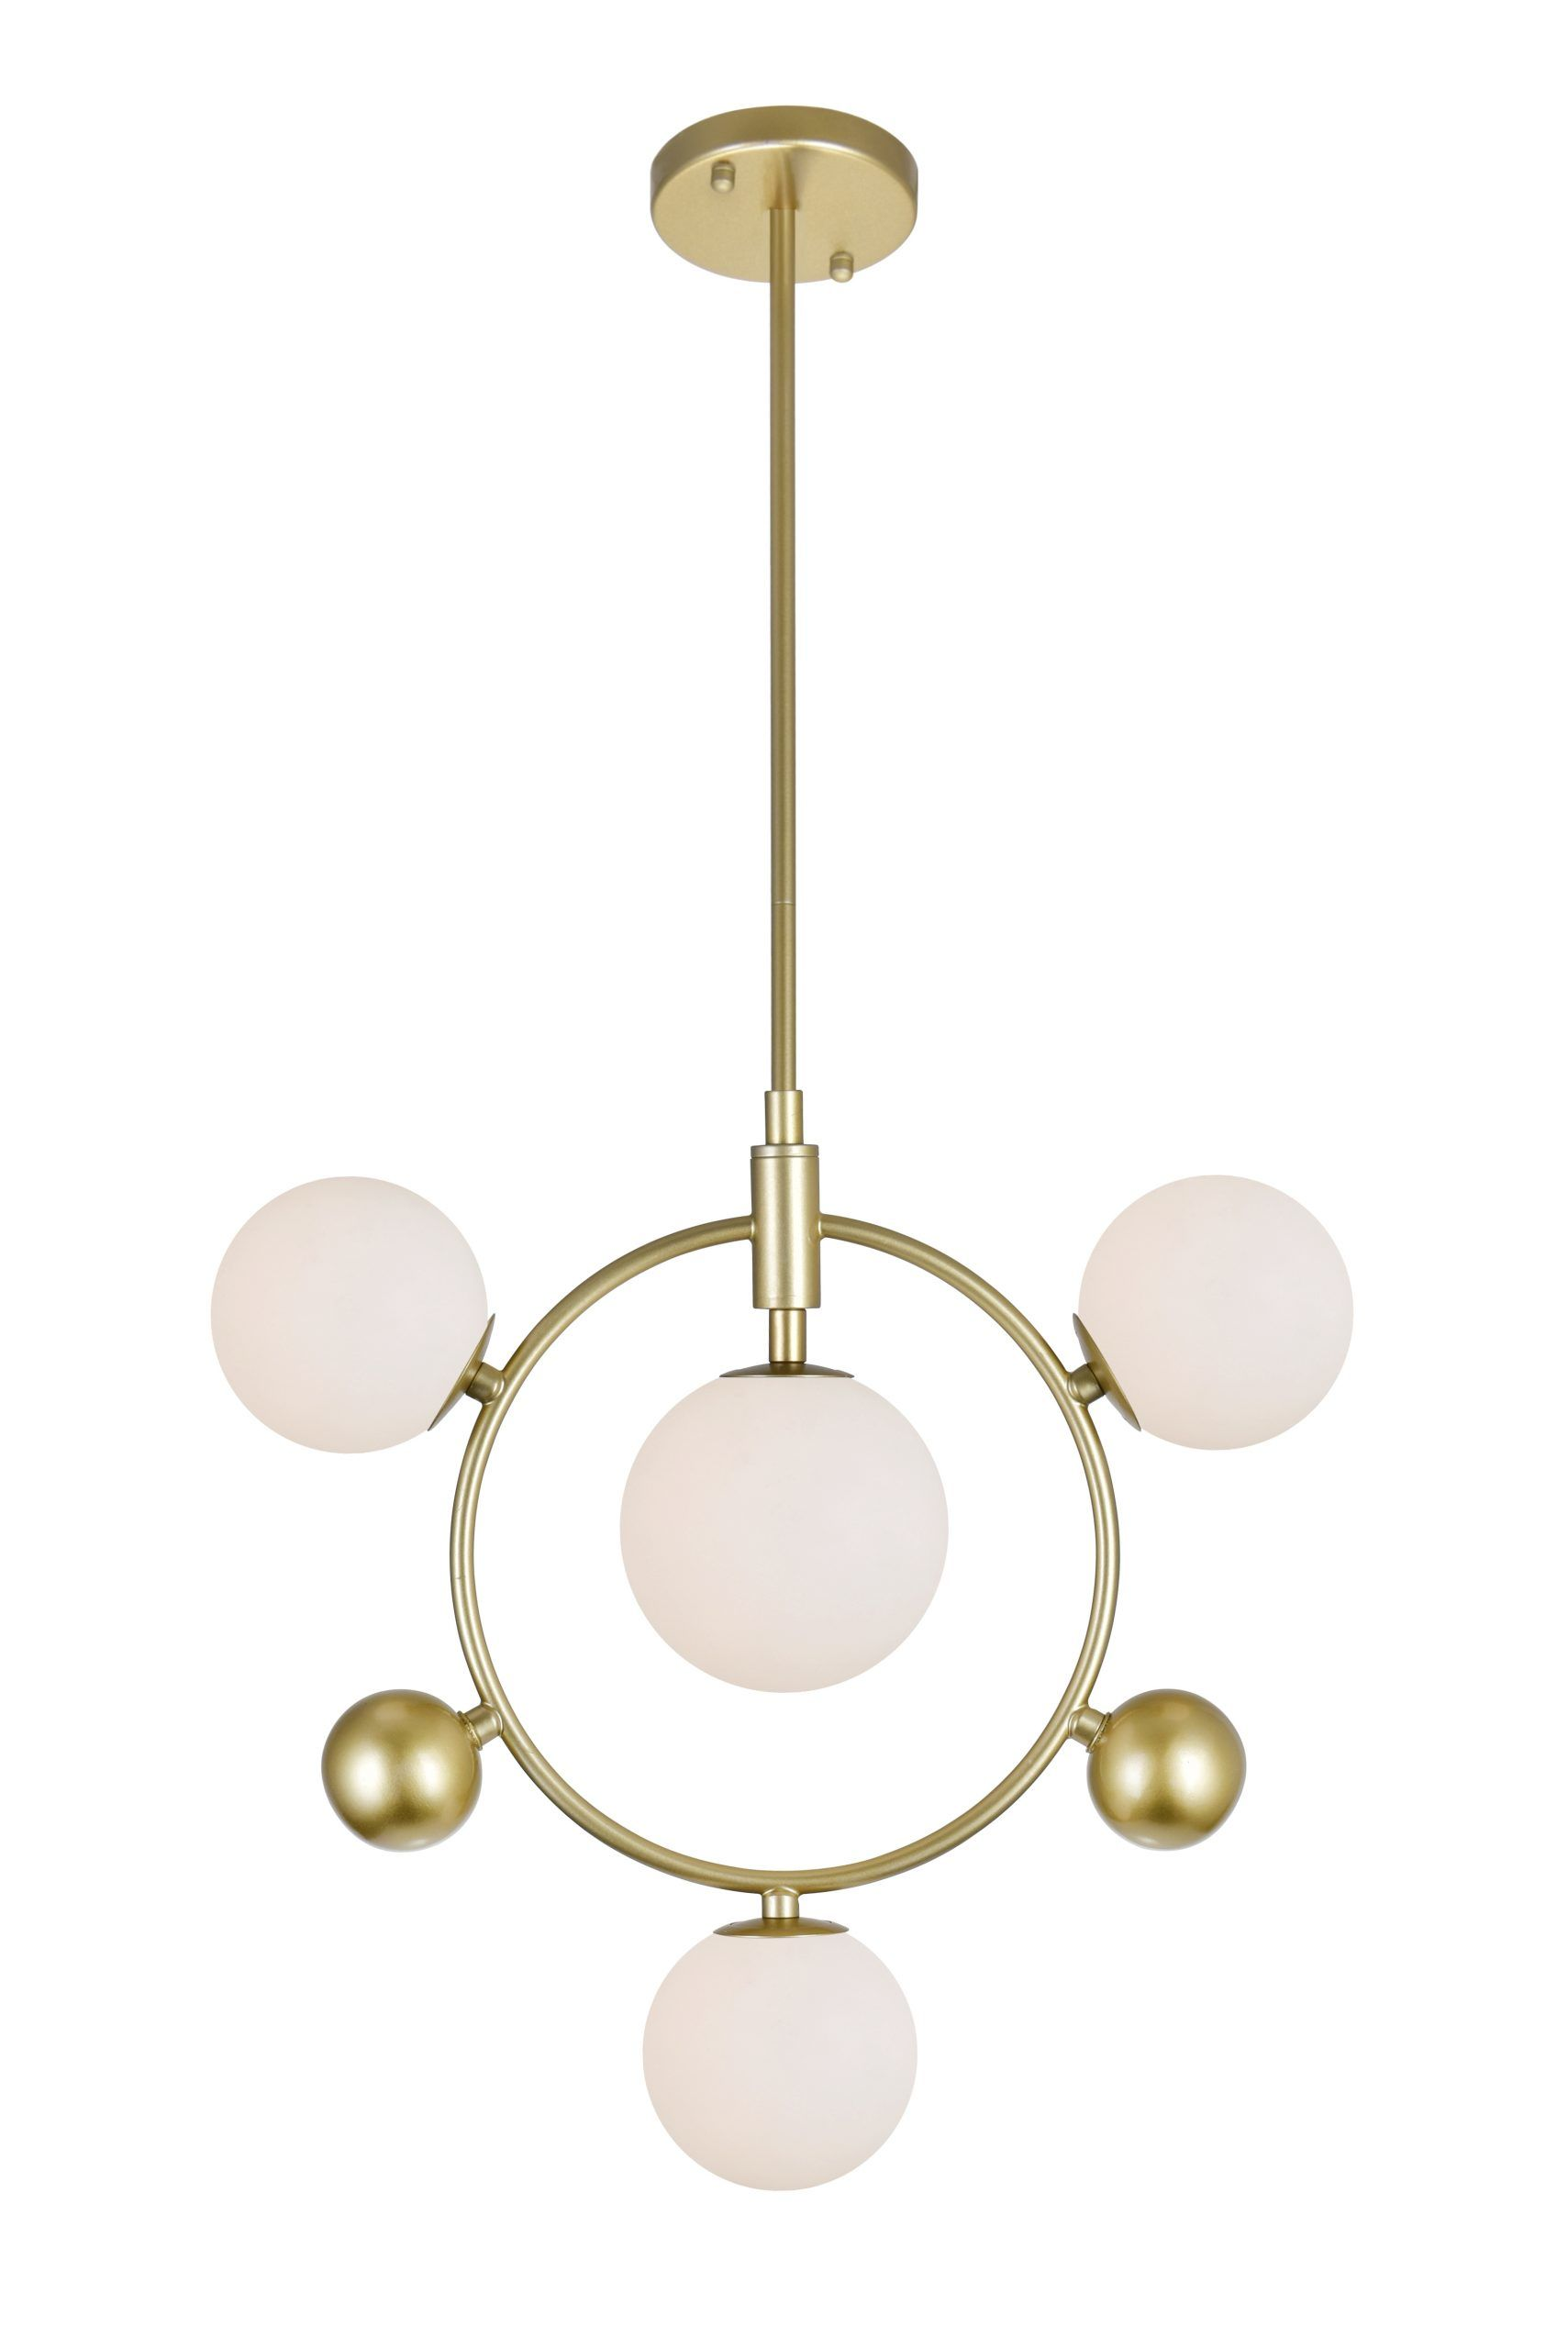 4 Light Pendant with Medallion Gold Finish